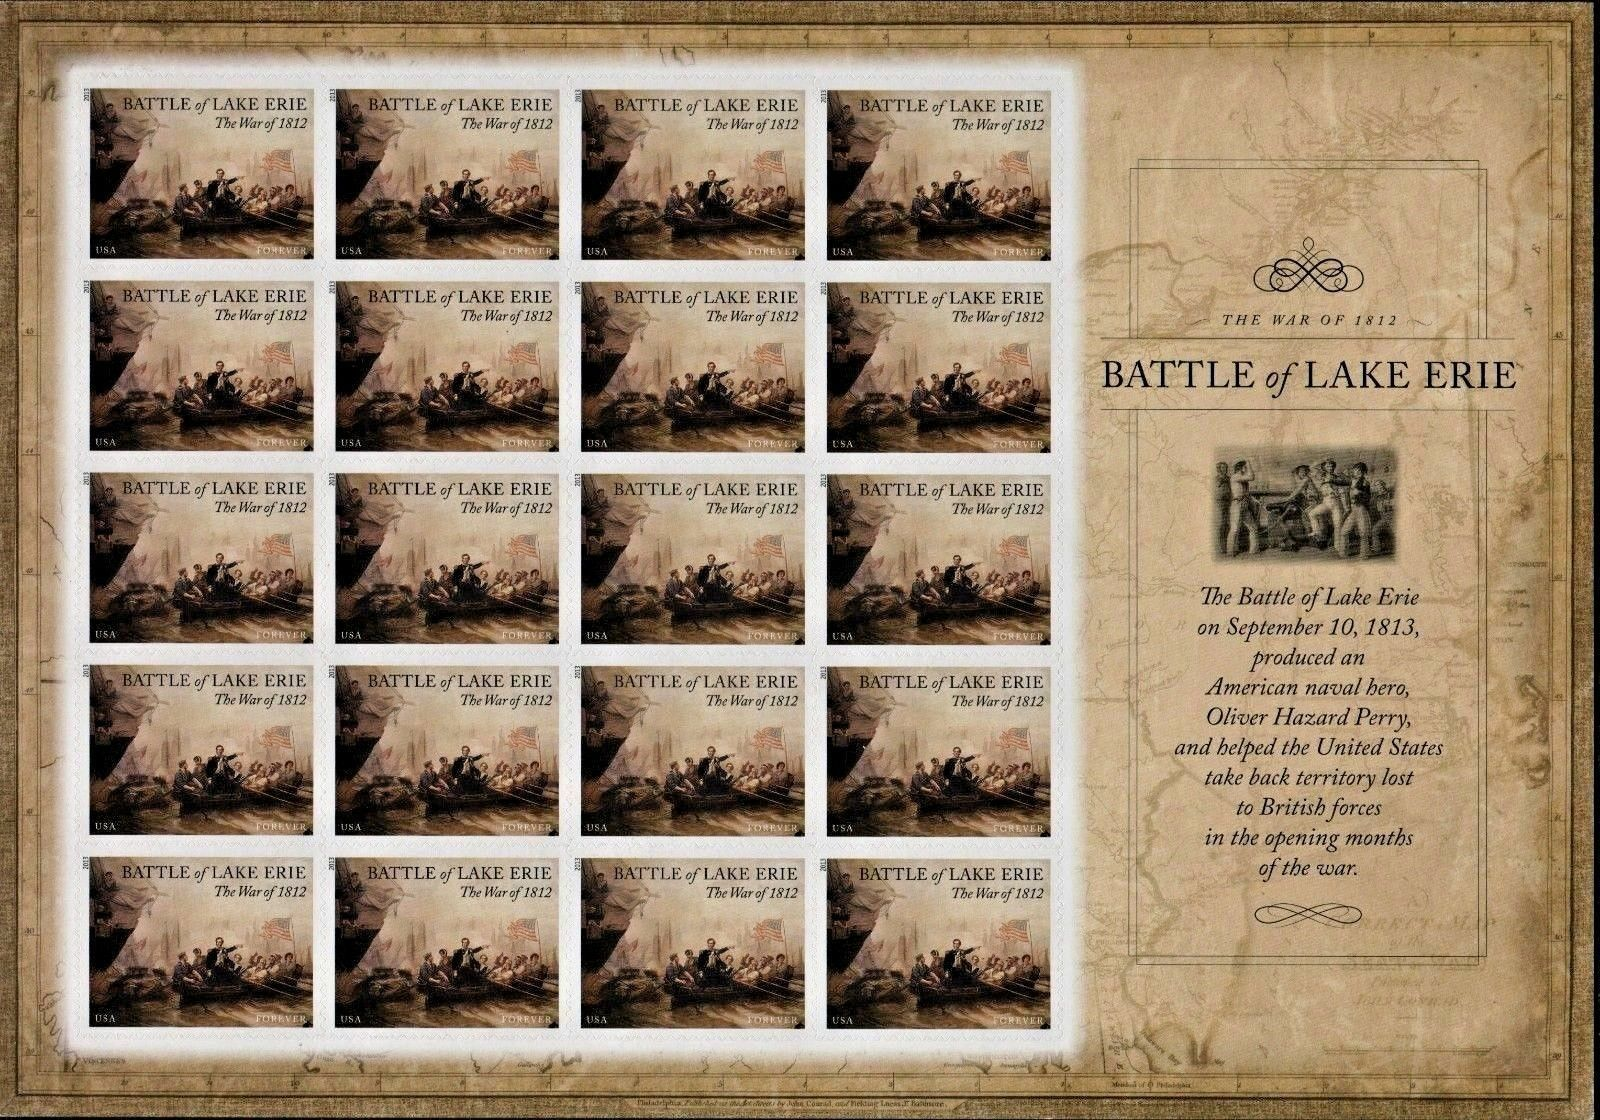 2013 46c Battle of Lake Erie, The War of 1812, Sheet of